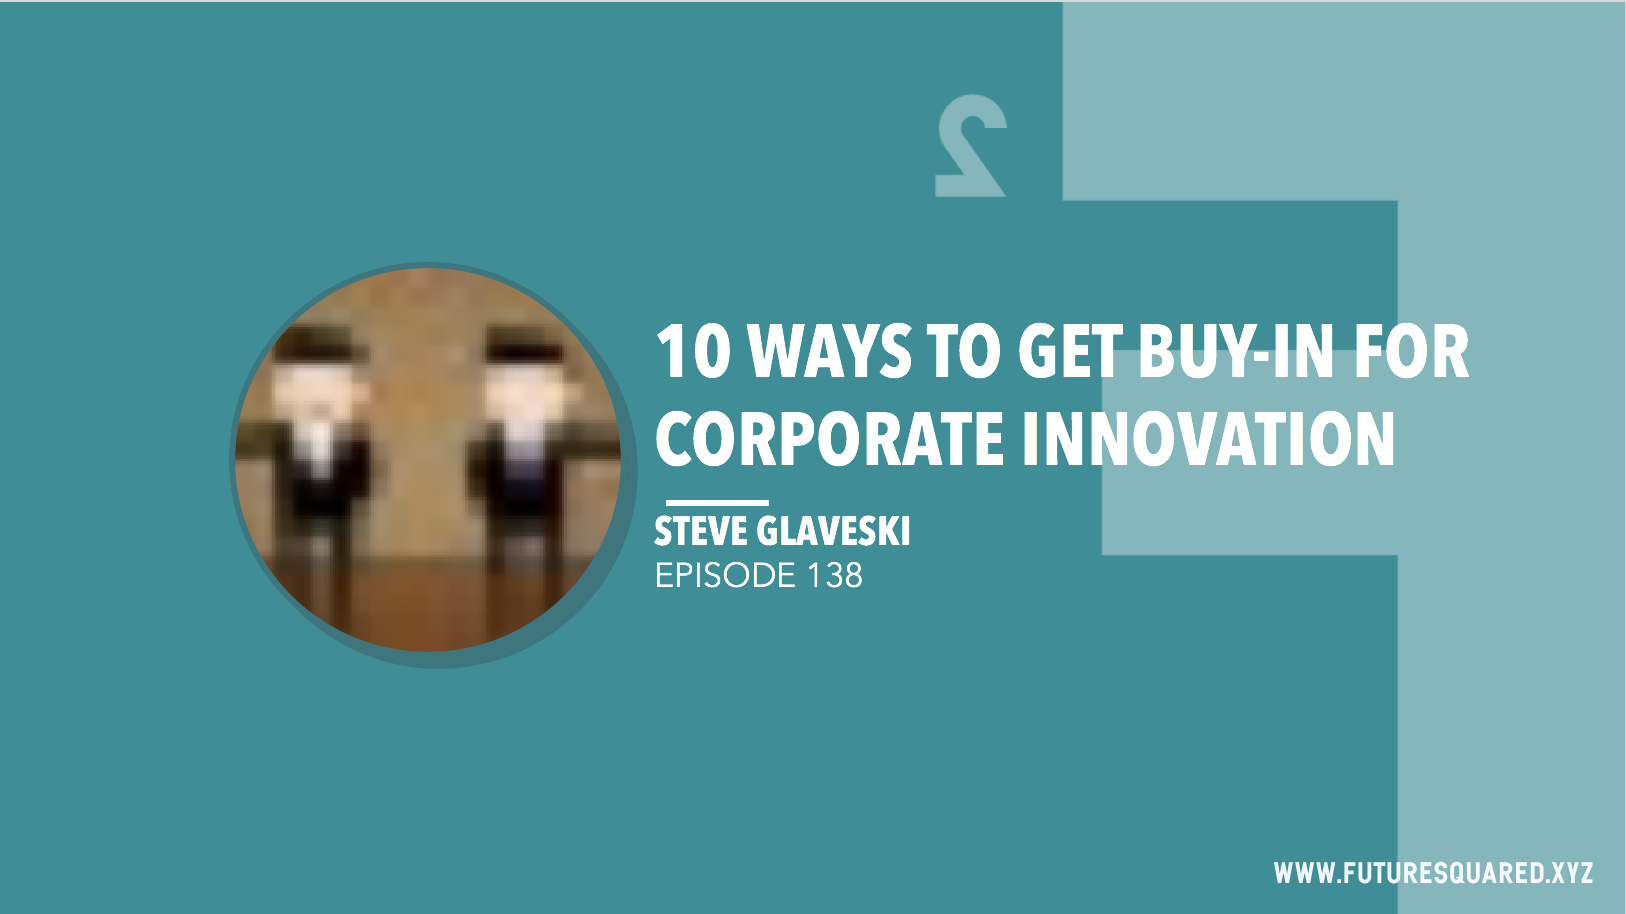 Future Squared Episode #138: 10 Ways to Get Buy-in for Corporate Innovation